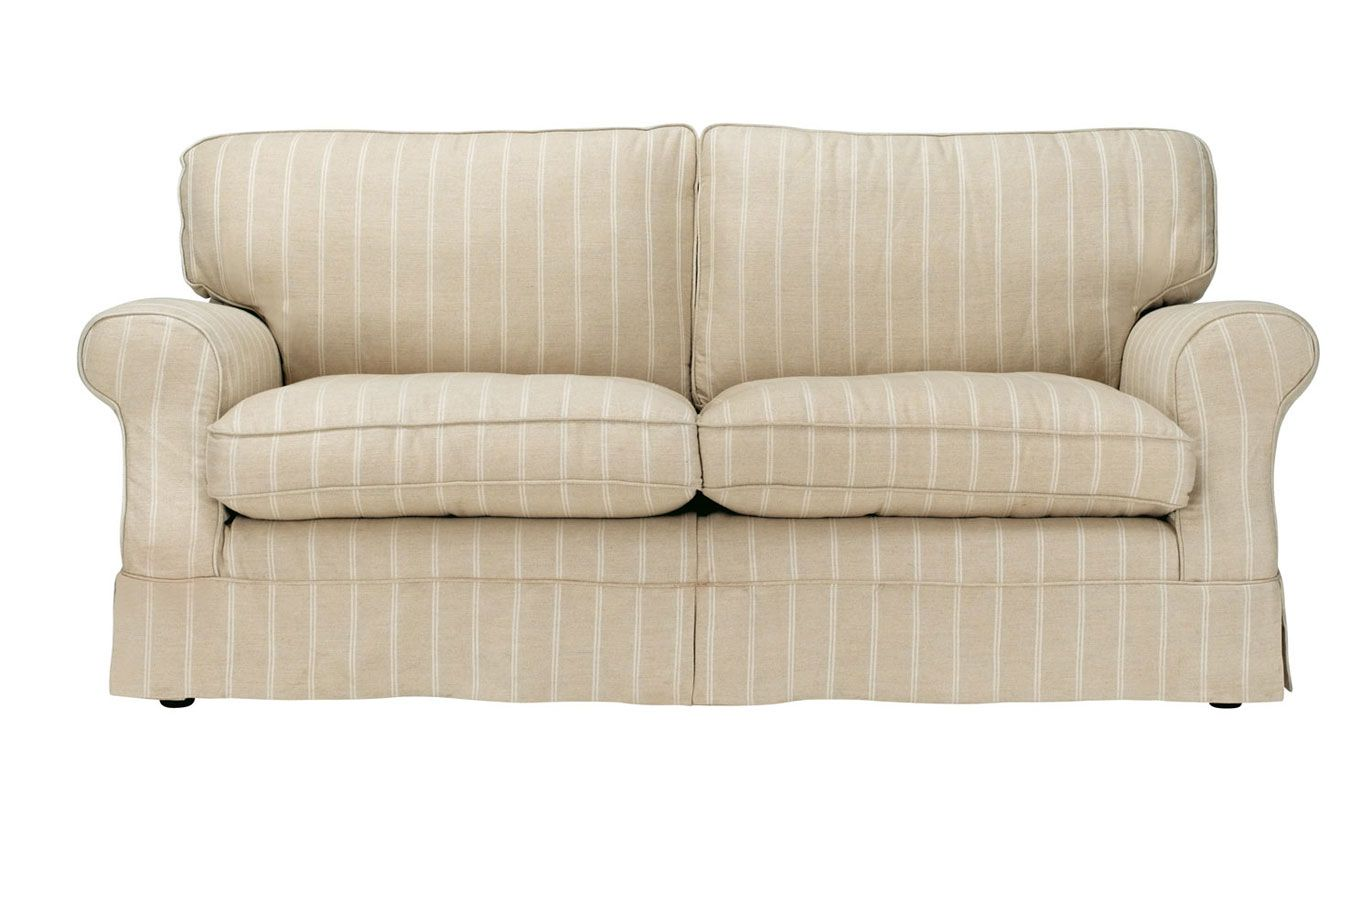 Padstow Upholstered Large 2 Seater Sofa - Laura Ashley made ...